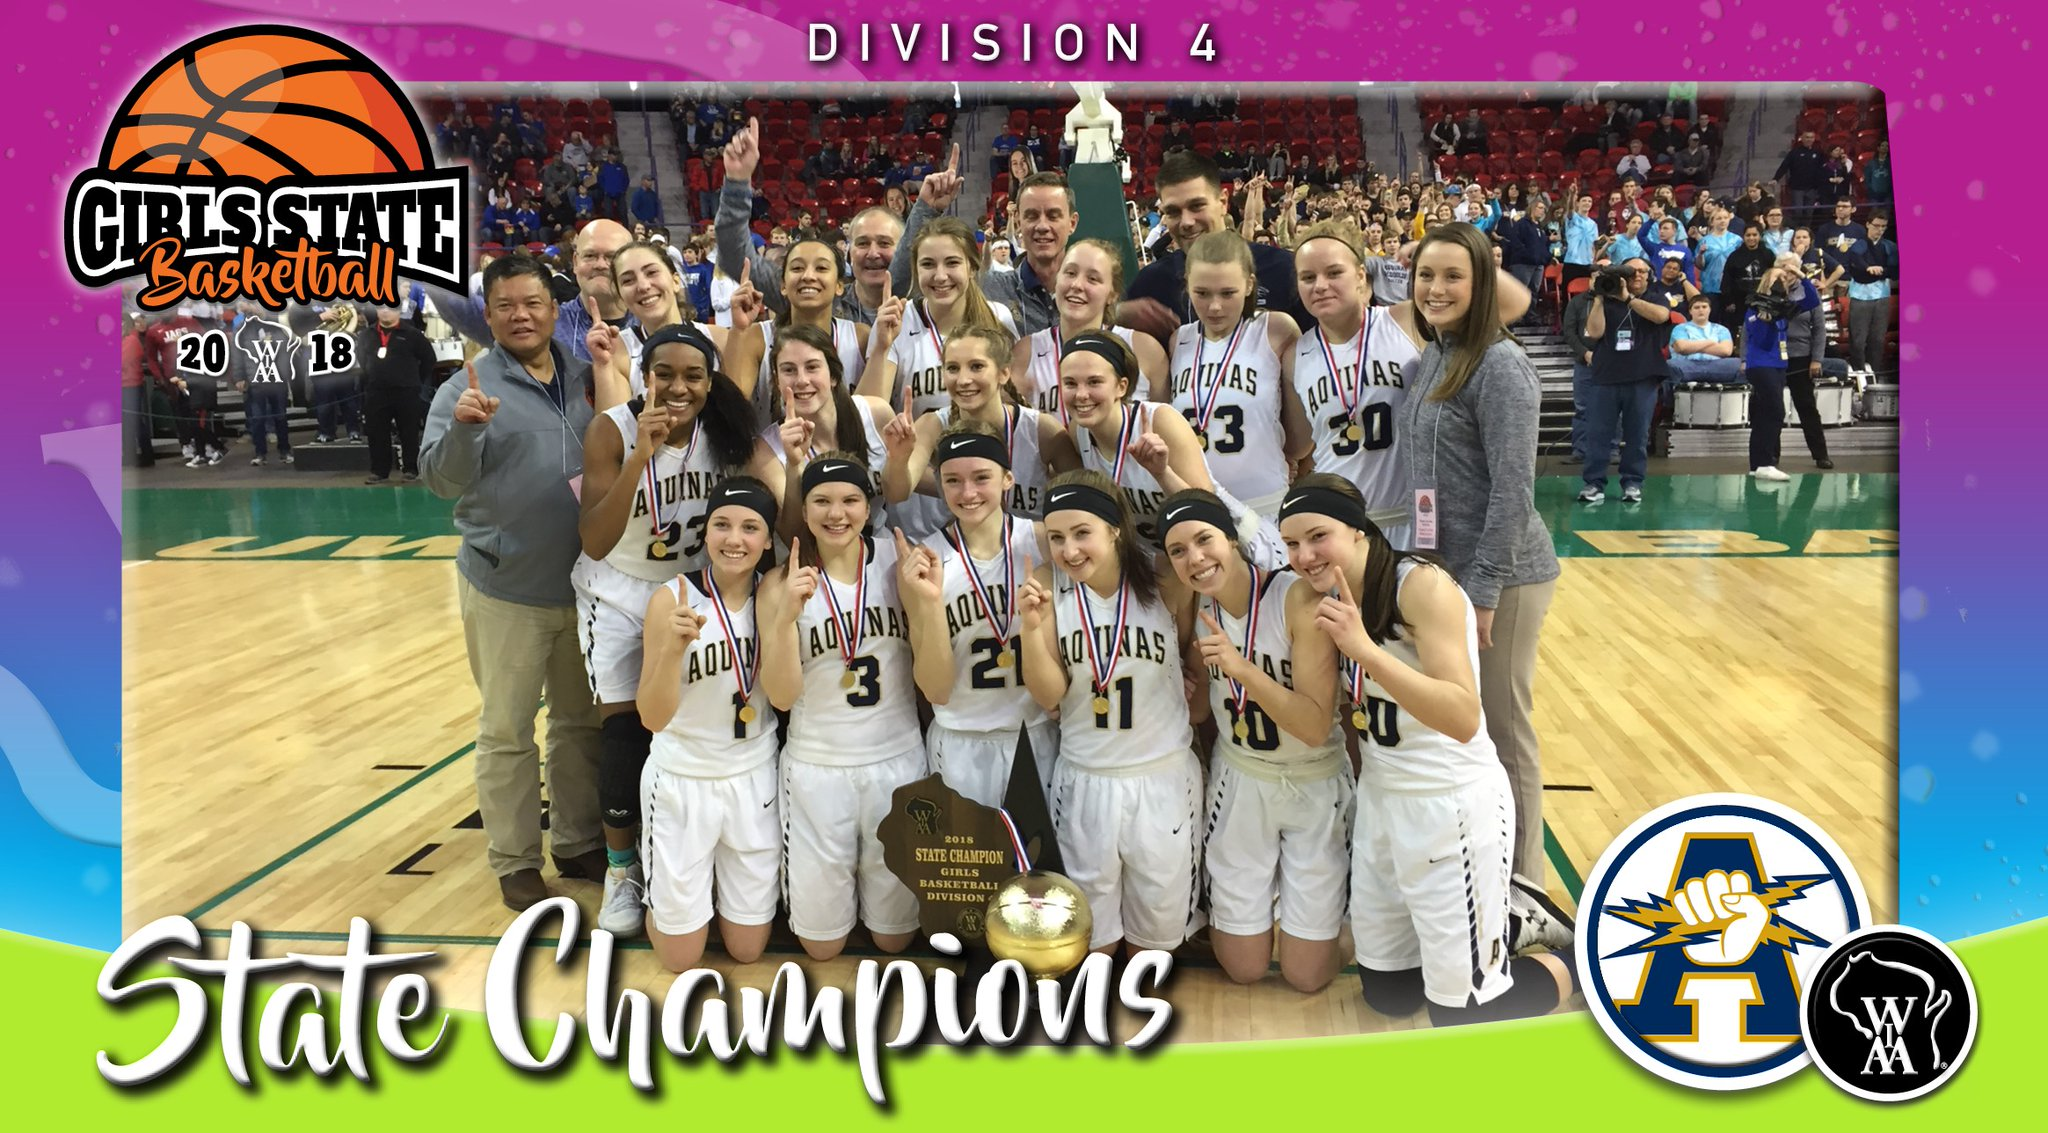 Aquinas gets redemption in winning state championship